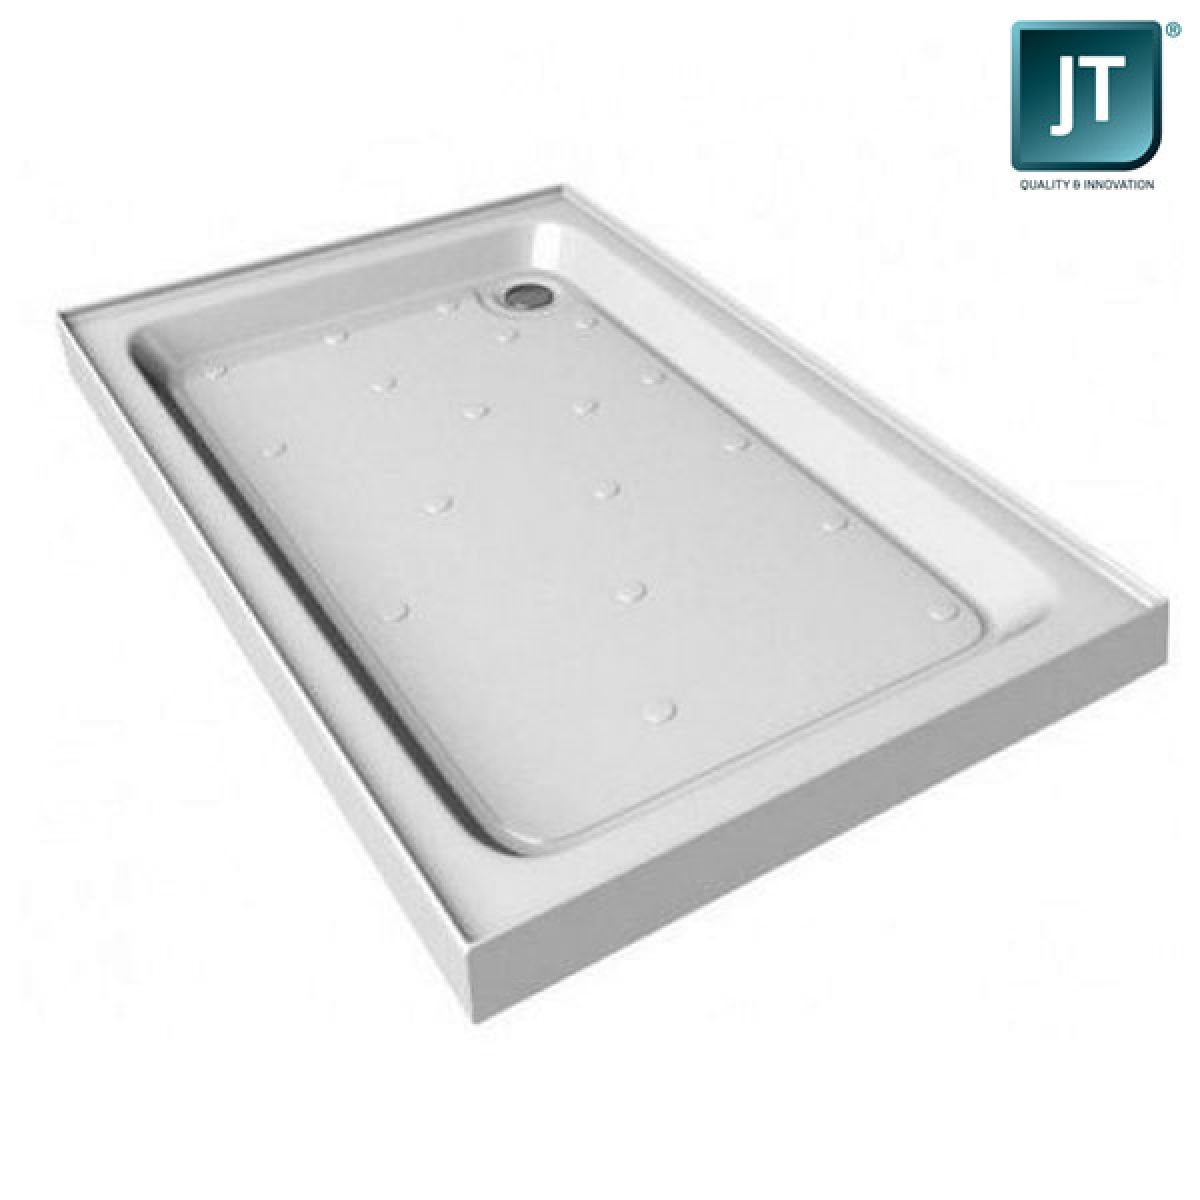 just trays ultracast rectangle upstand shower tray uk. Black Bedroom Furniture Sets. Home Design Ideas